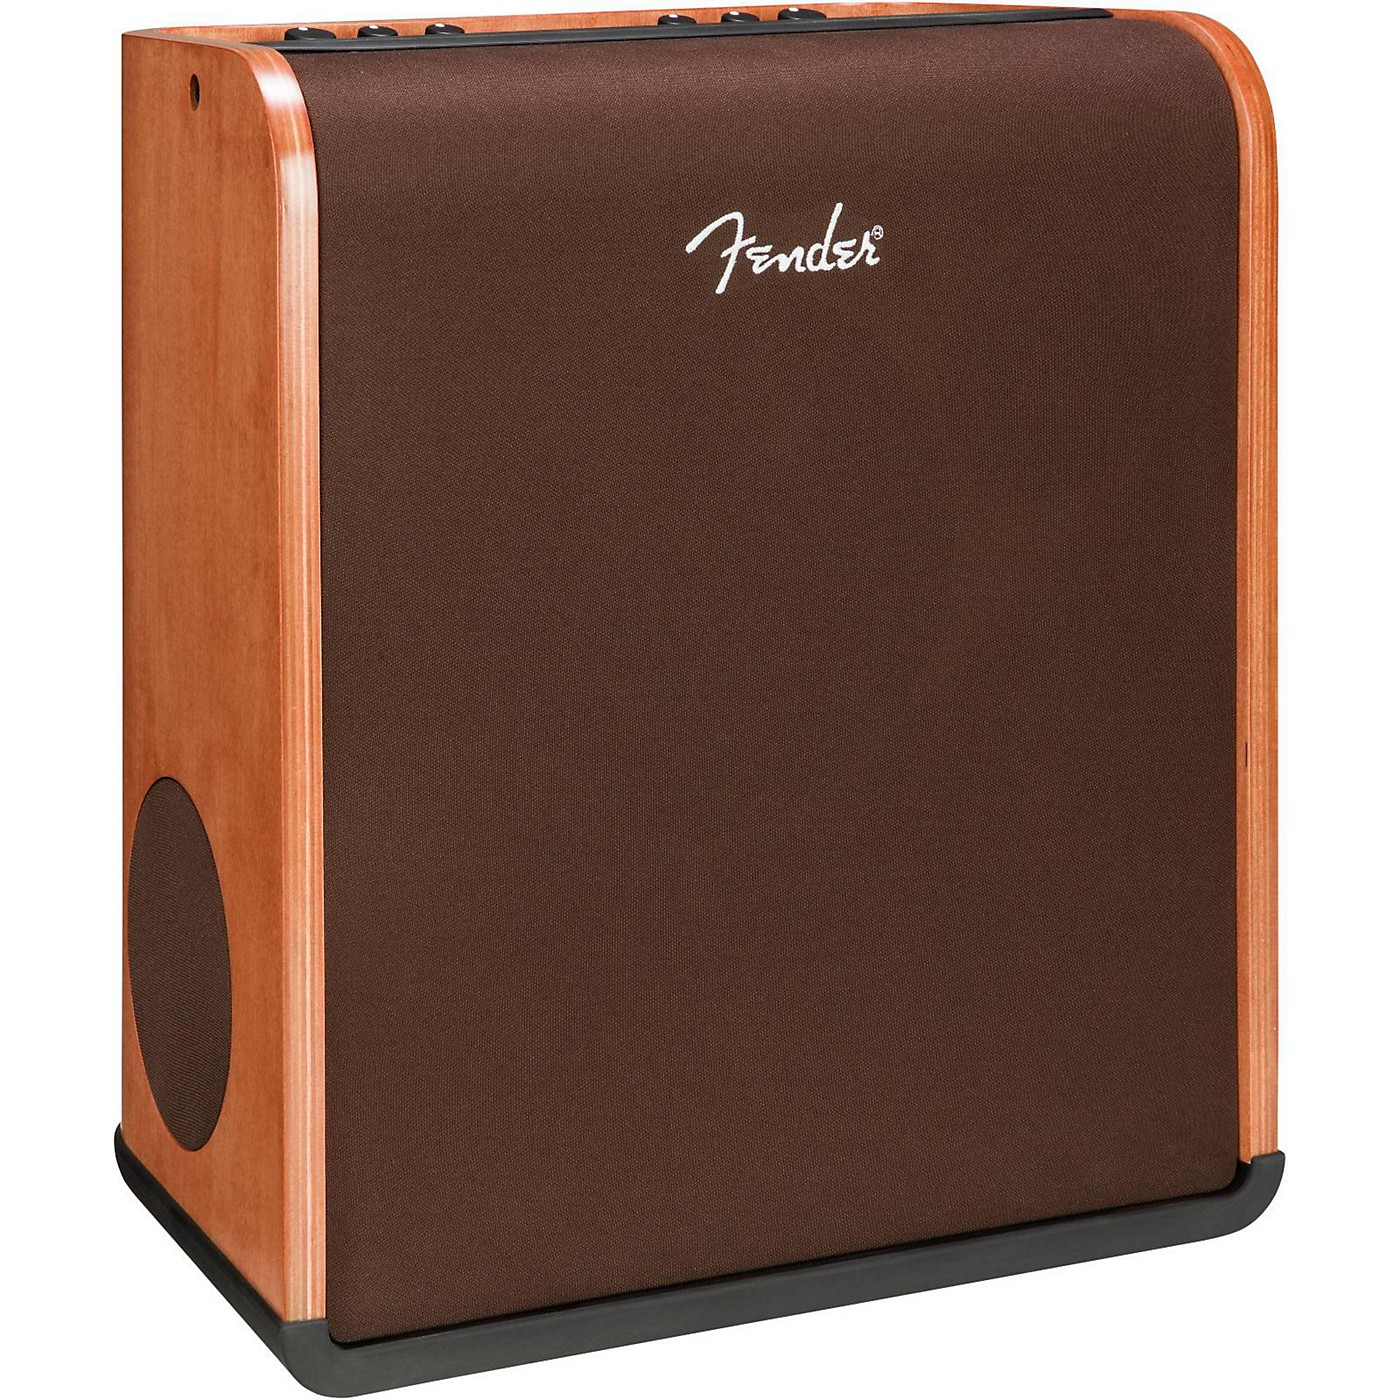 Fender Acoustic SFX 160W Stereo Acoustic Guitar Combo Amplifier with Hand-Rubbed Cinnamon Finish thumbnail